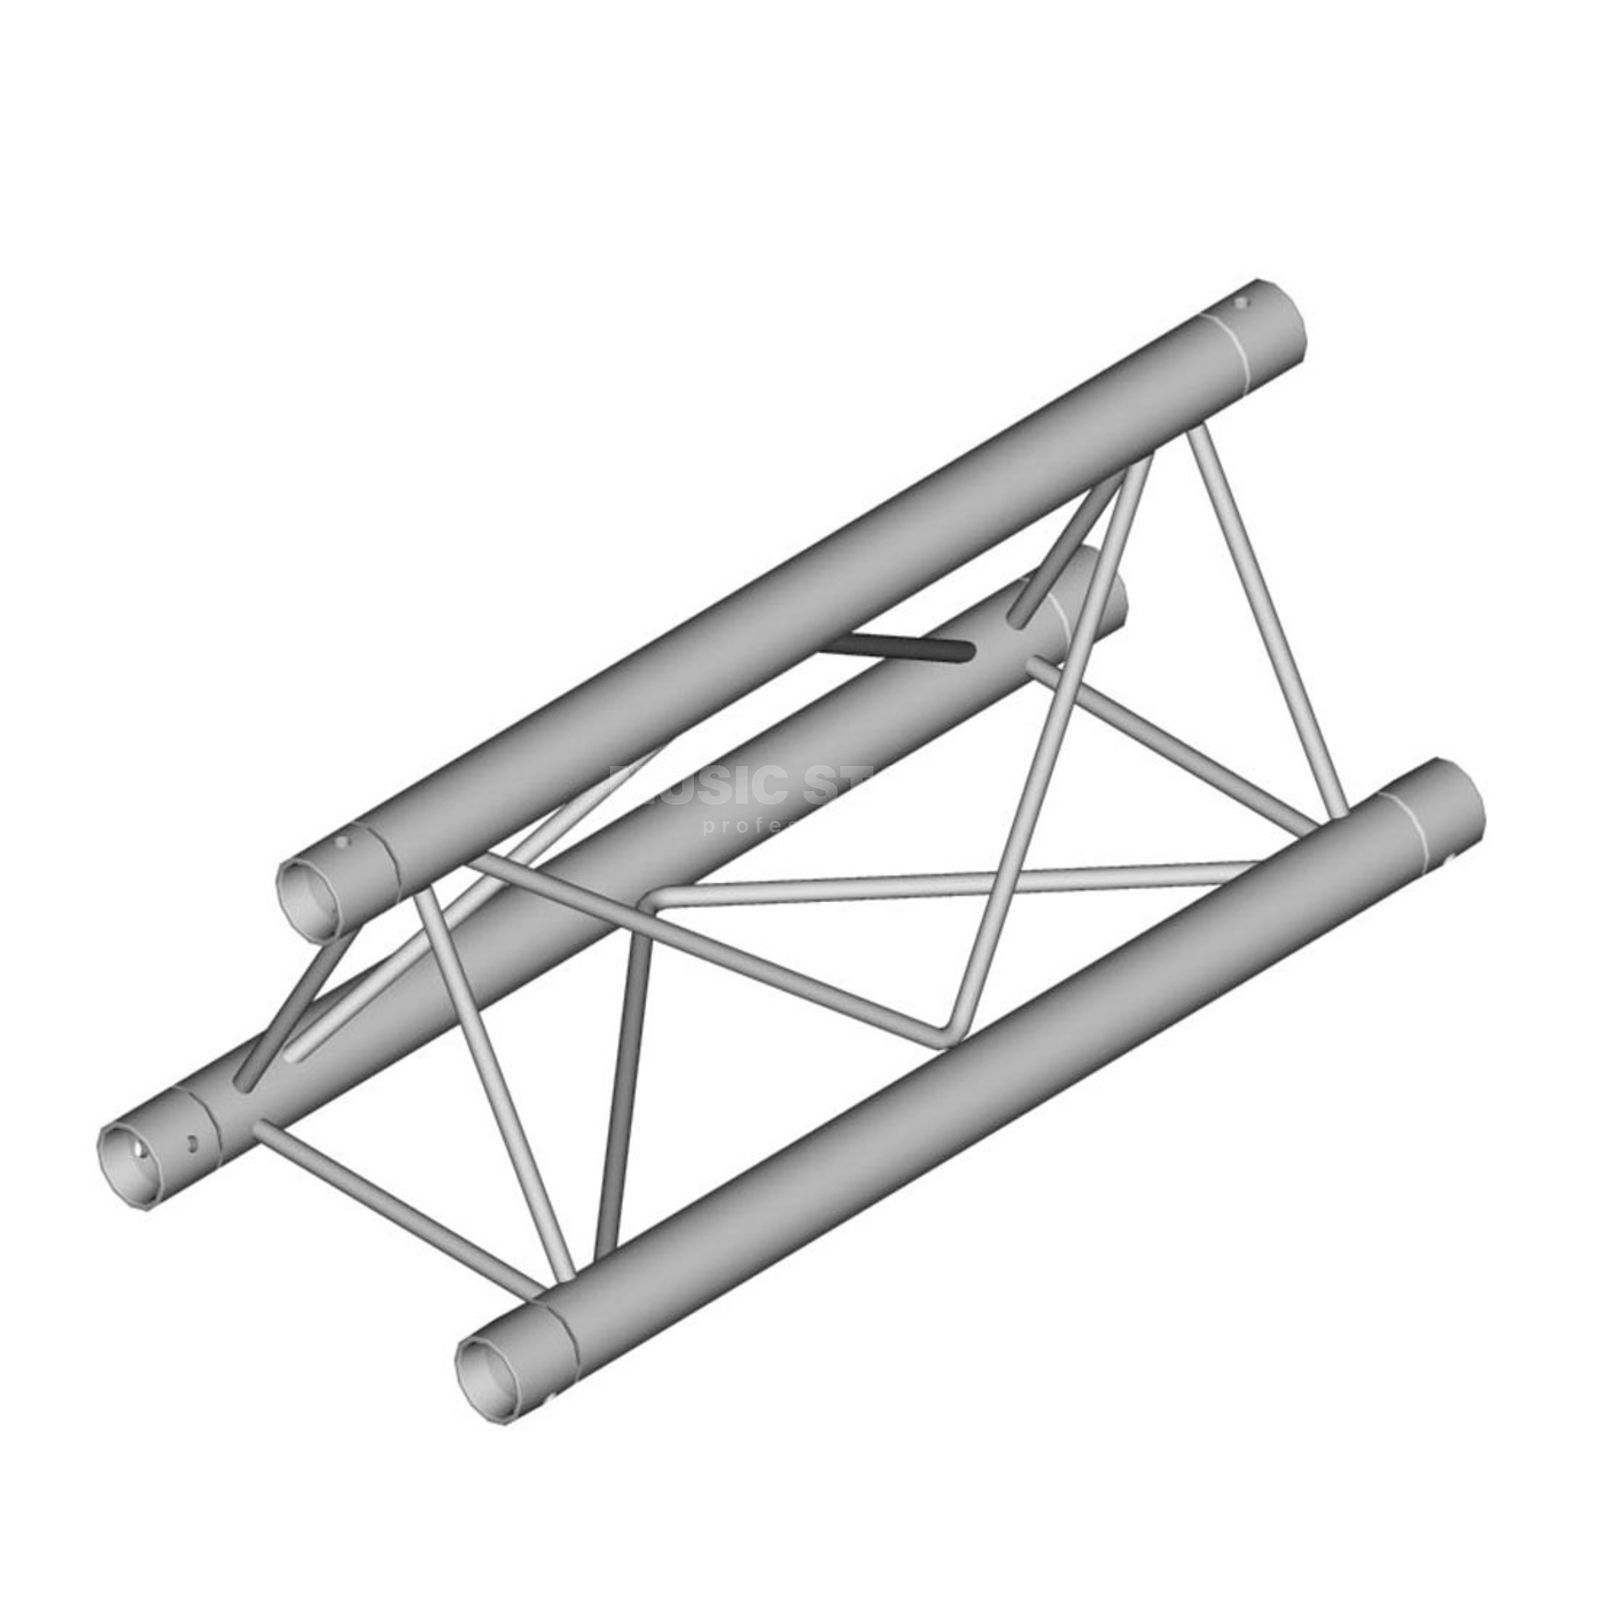 DURATRUSS DT 23-250, 3-Point Truss 2.5 m incl.  Conical Coupler Produktbillede